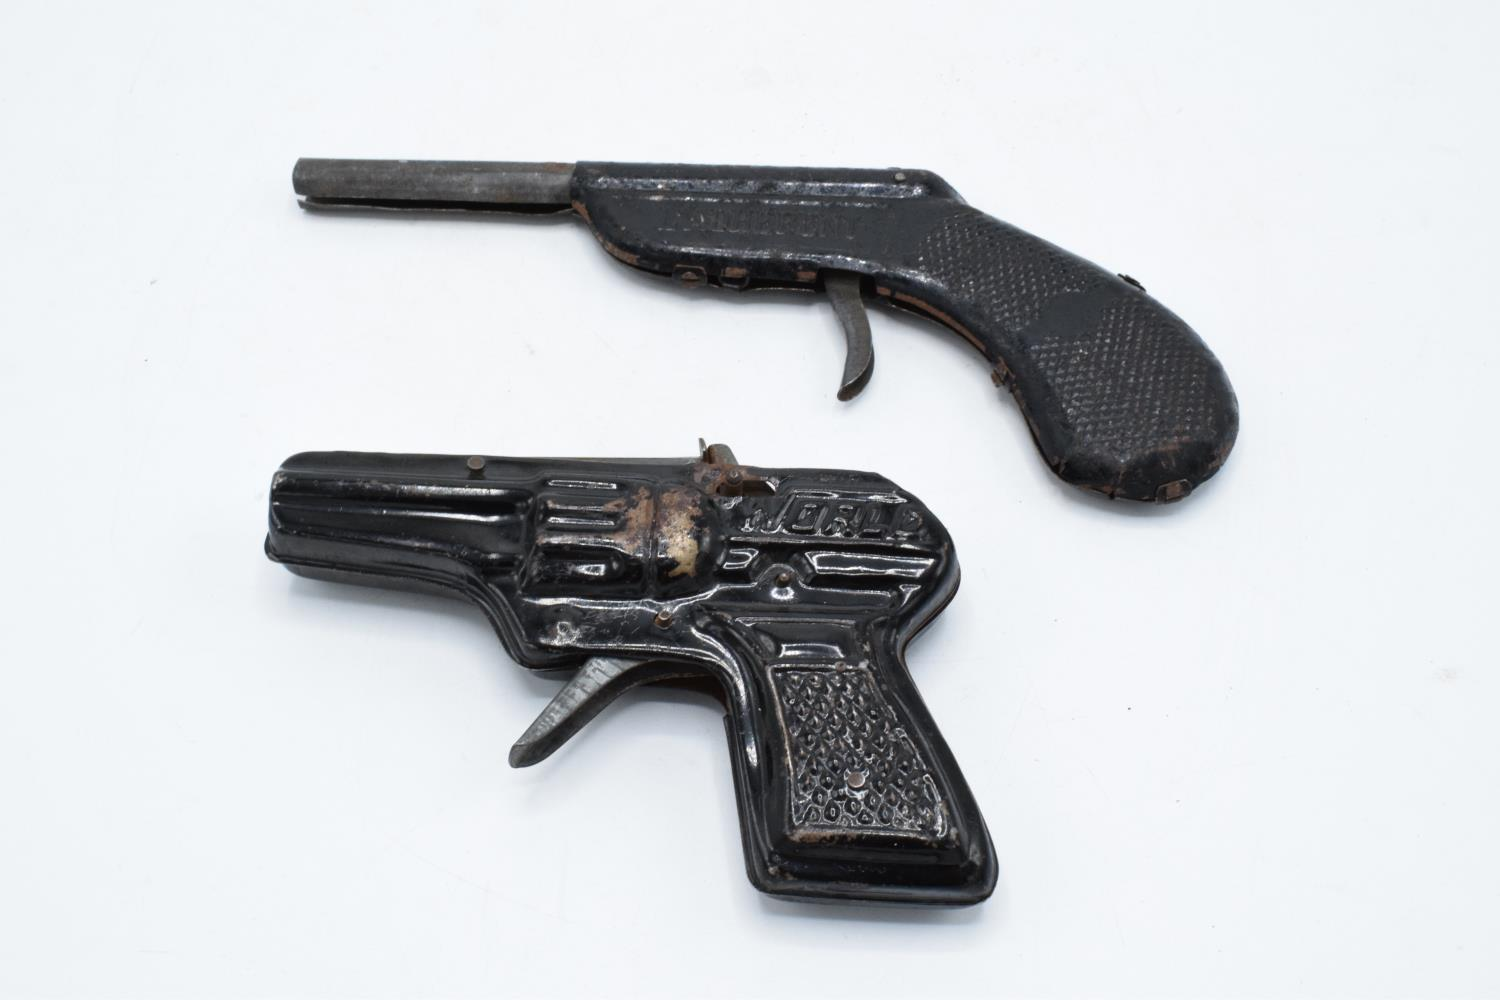 A pair of vintage mid century metal cap guns 'World' and 'L'arderent' (2). Untested.